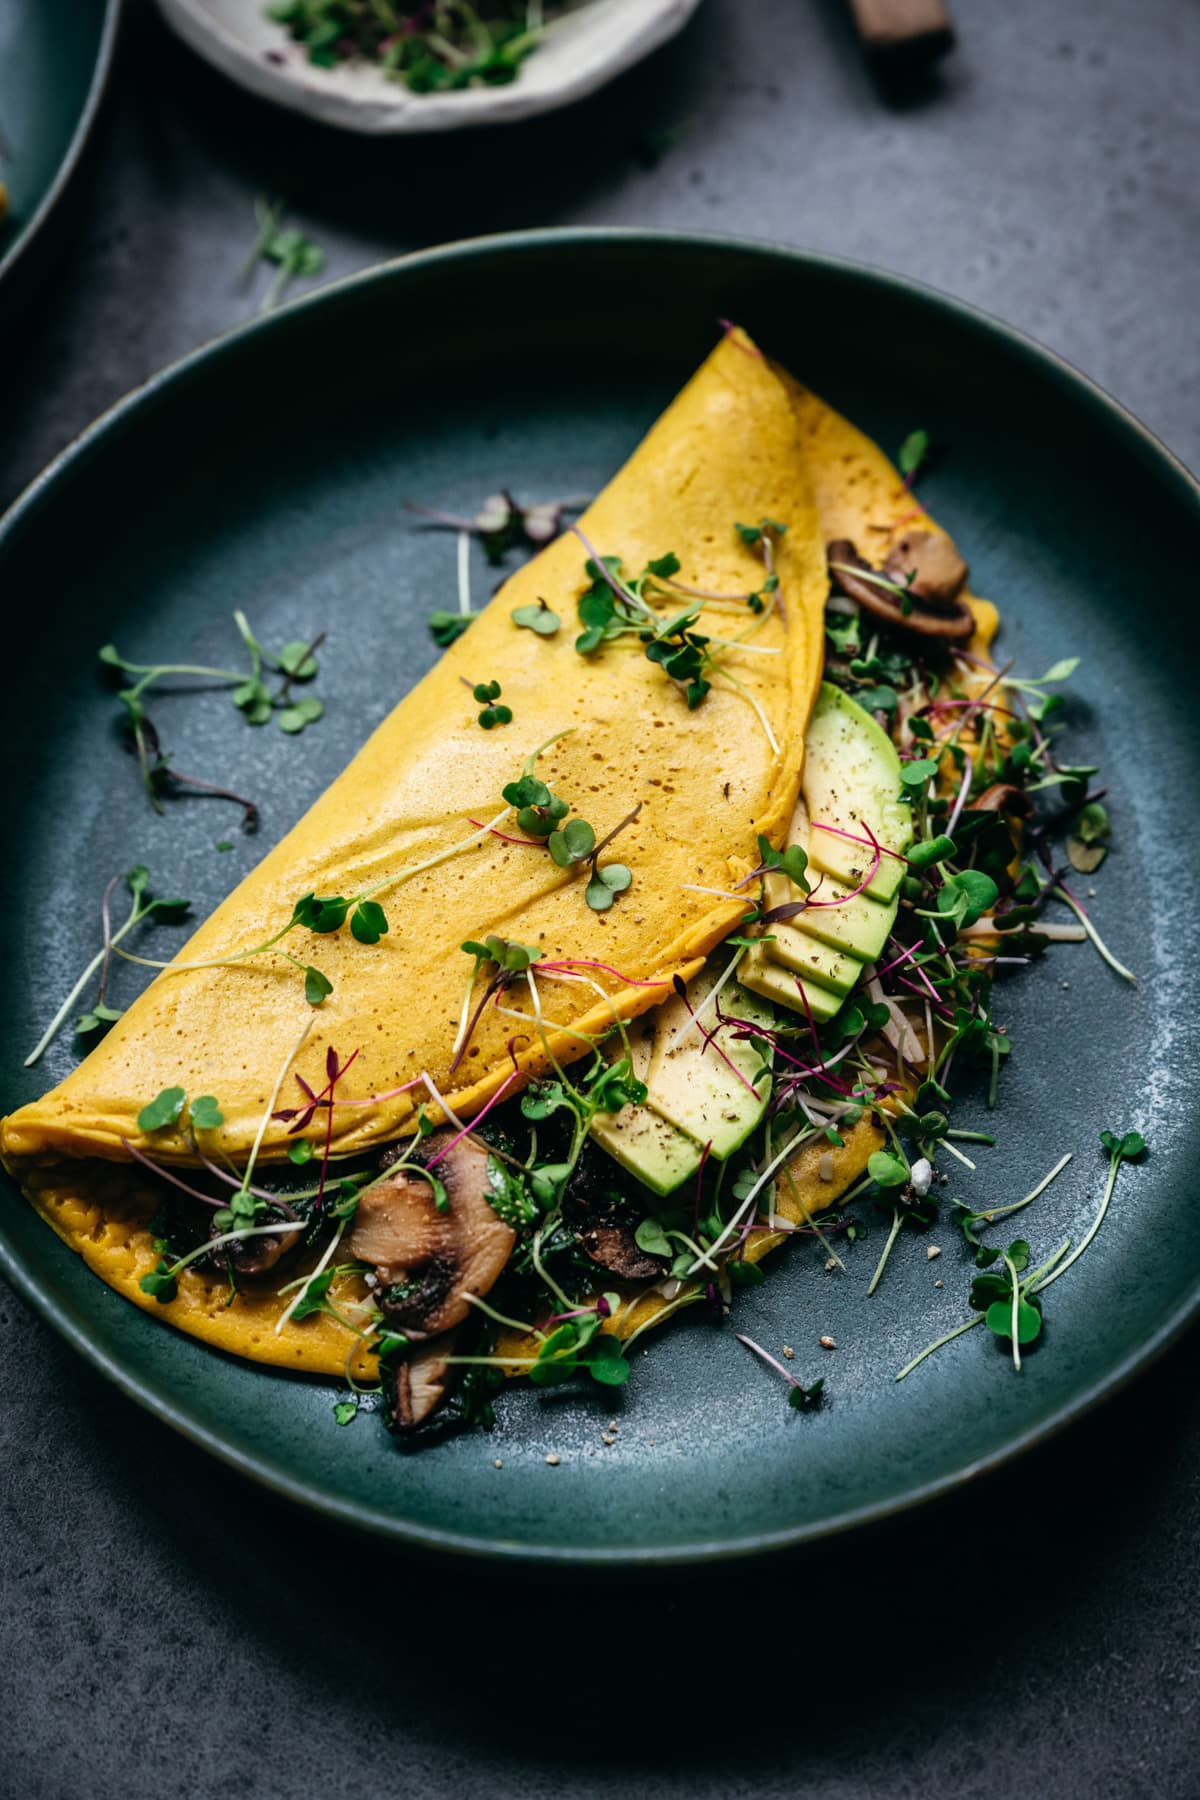 close up view of vegan omelette with mushrooms and avocado.